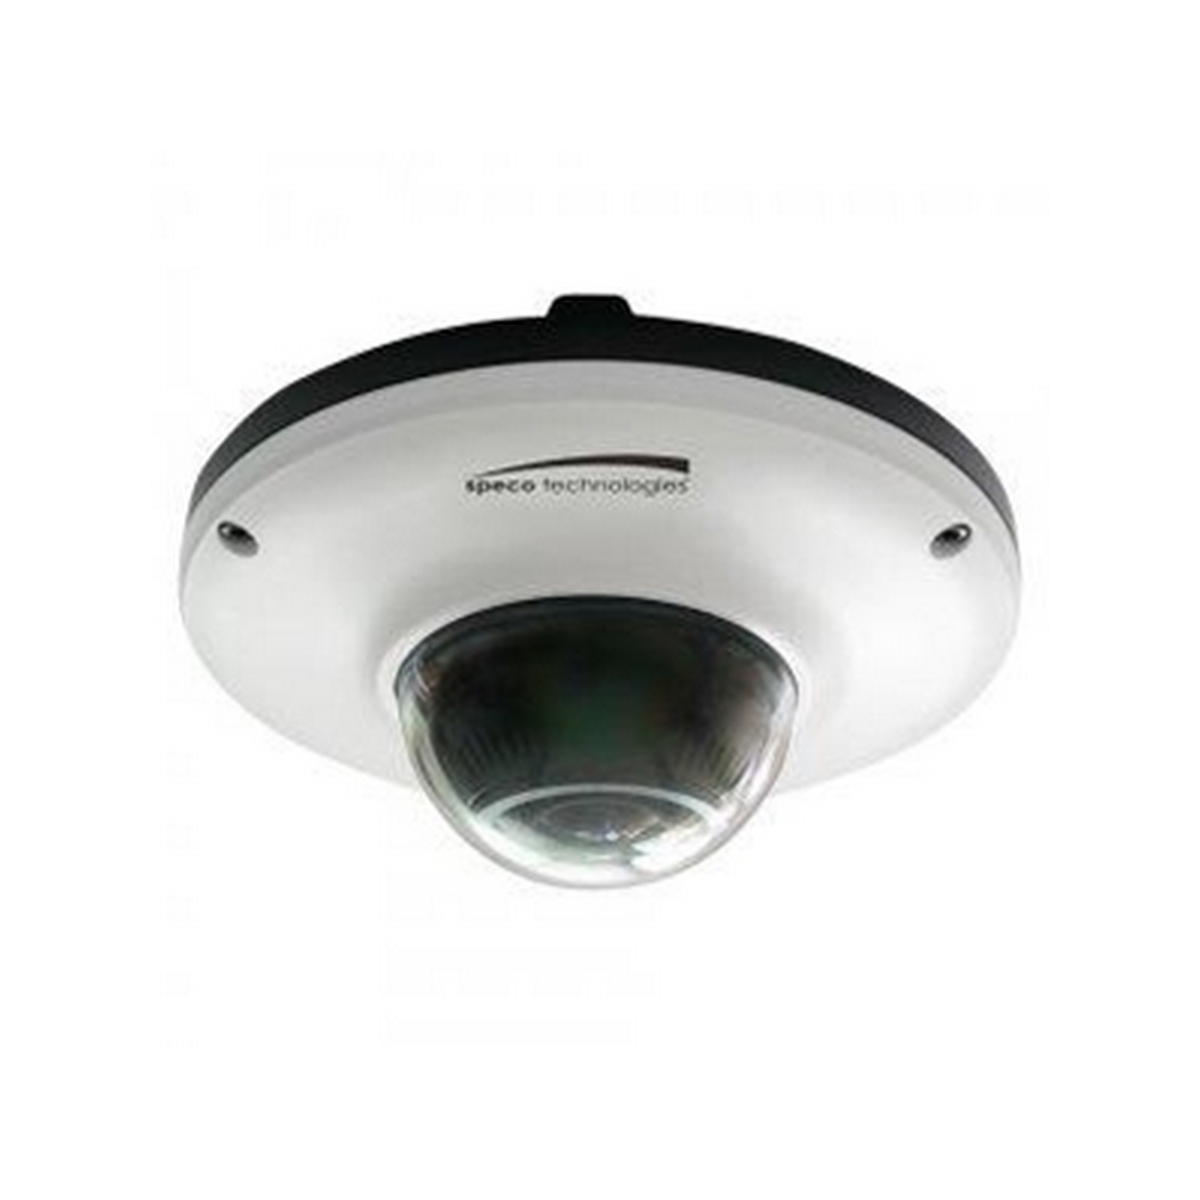 Speco ONSIP 5MP 360 degree dome camera - White